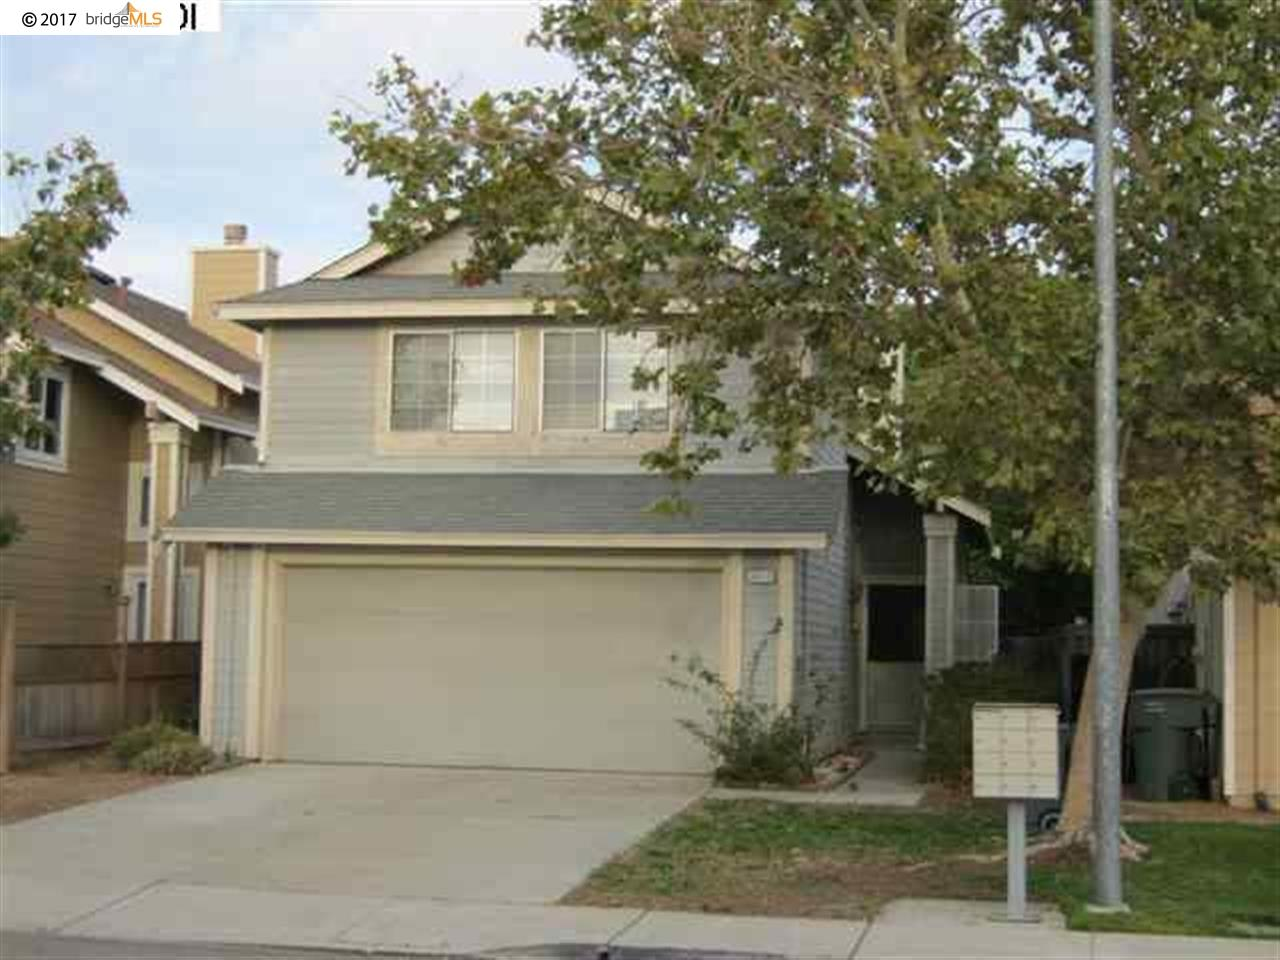 Single Family Home for Rent at 4612 BAYSIDE WAY 4612 BAYSIDE WAY Oakley, California 94561 United States